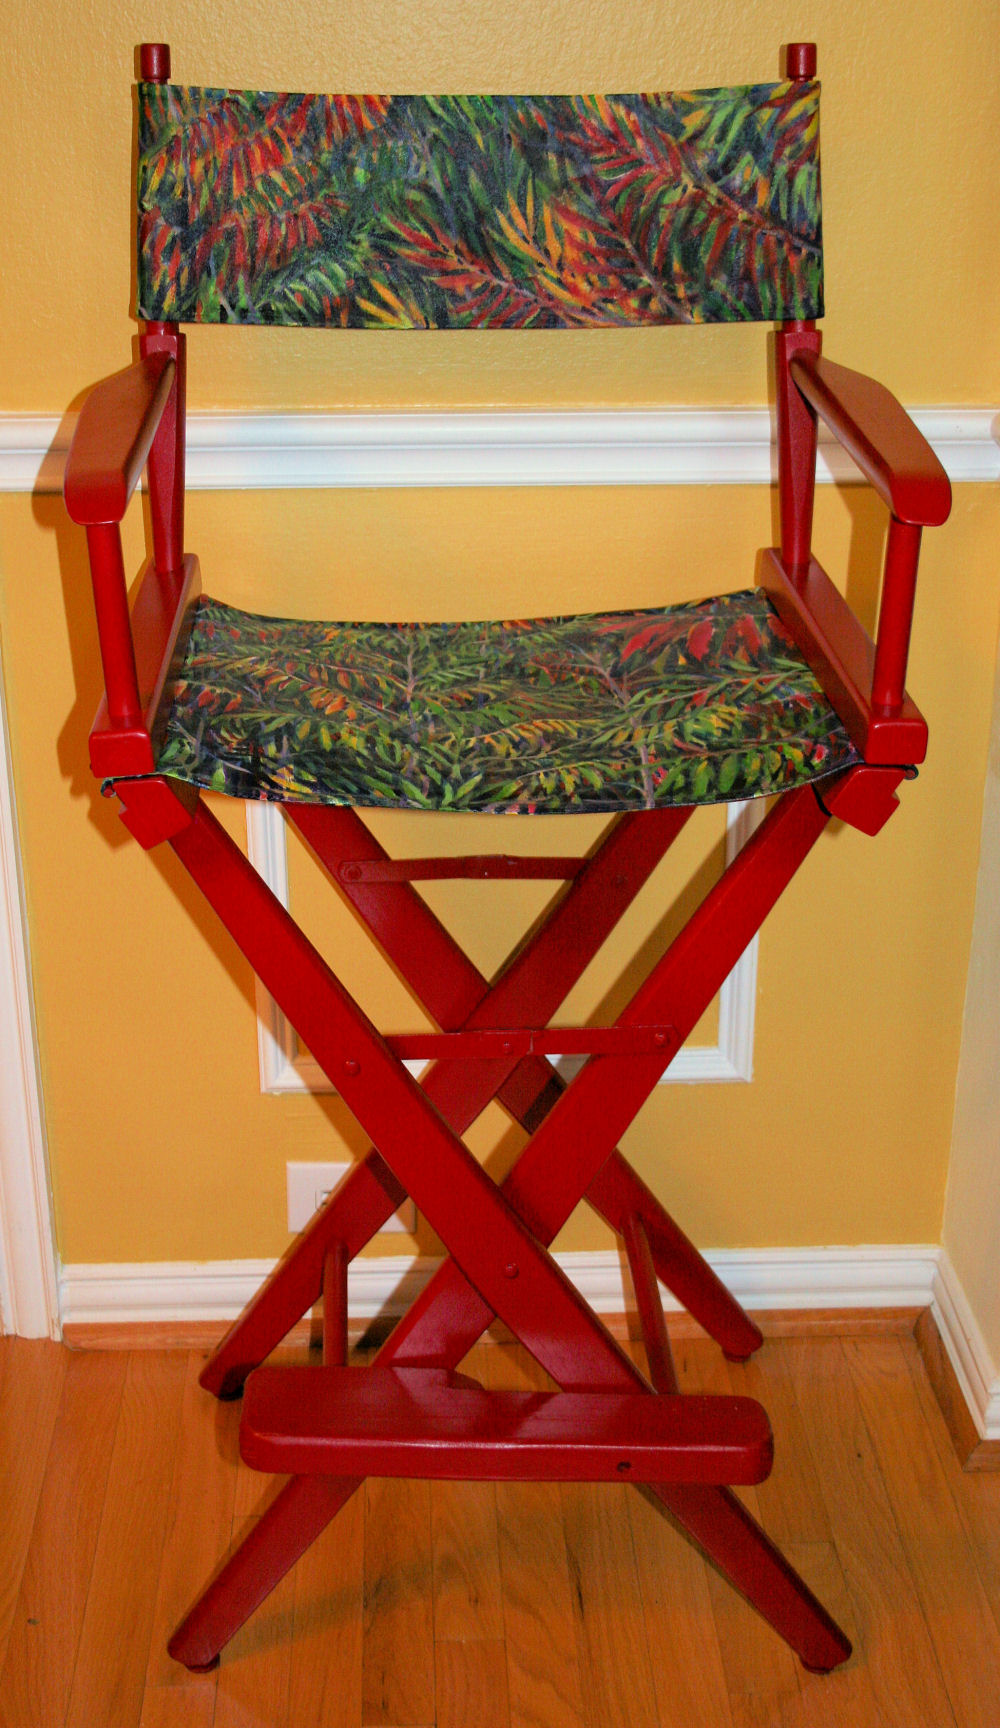 Sumac Bushes refurbished Director's Chair, acrylics on canvas, 48H x 23W x 16D inches